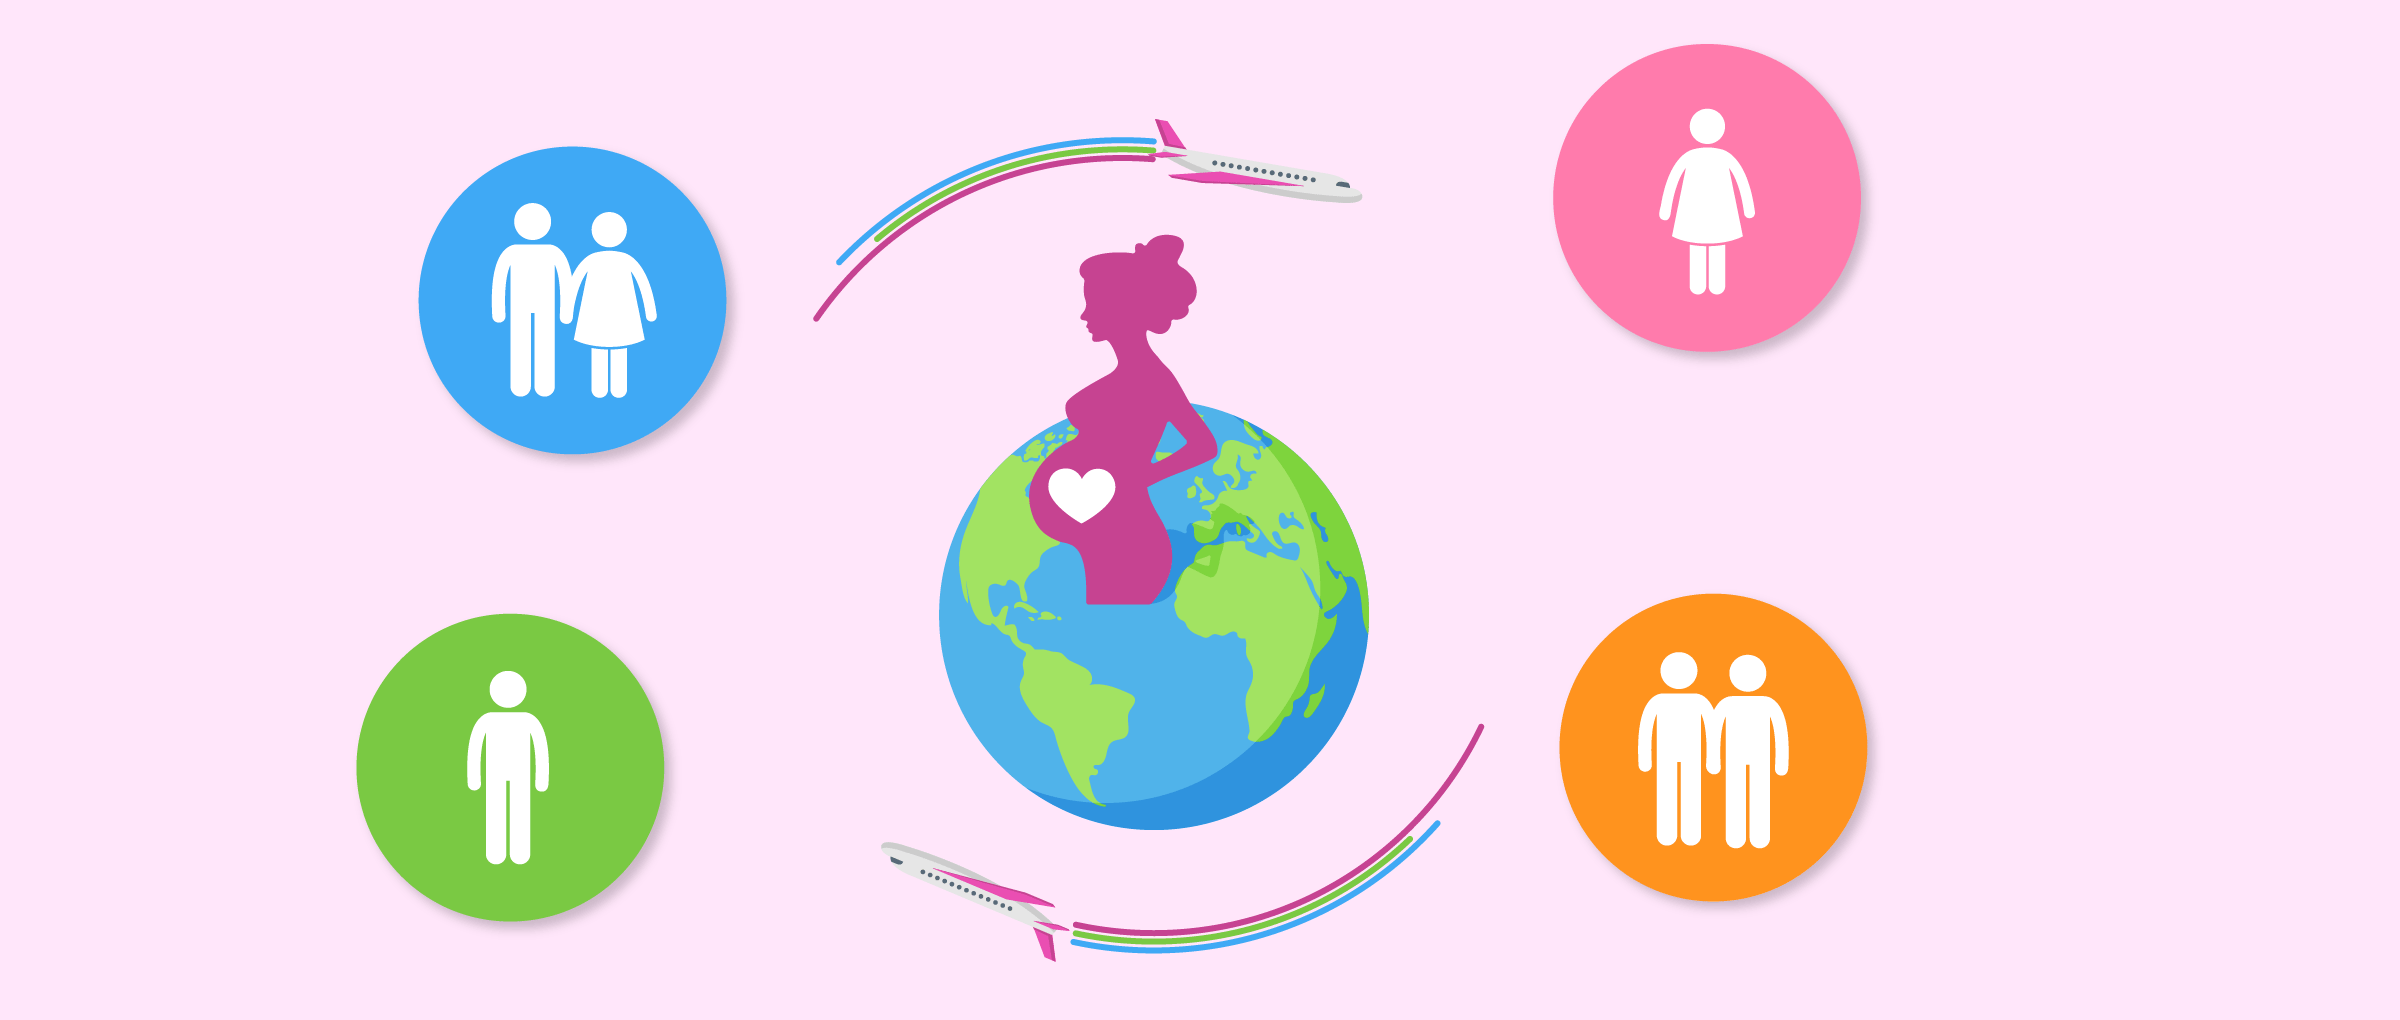 International Surrogacy – Laws & Options for Surrogacy Abroad